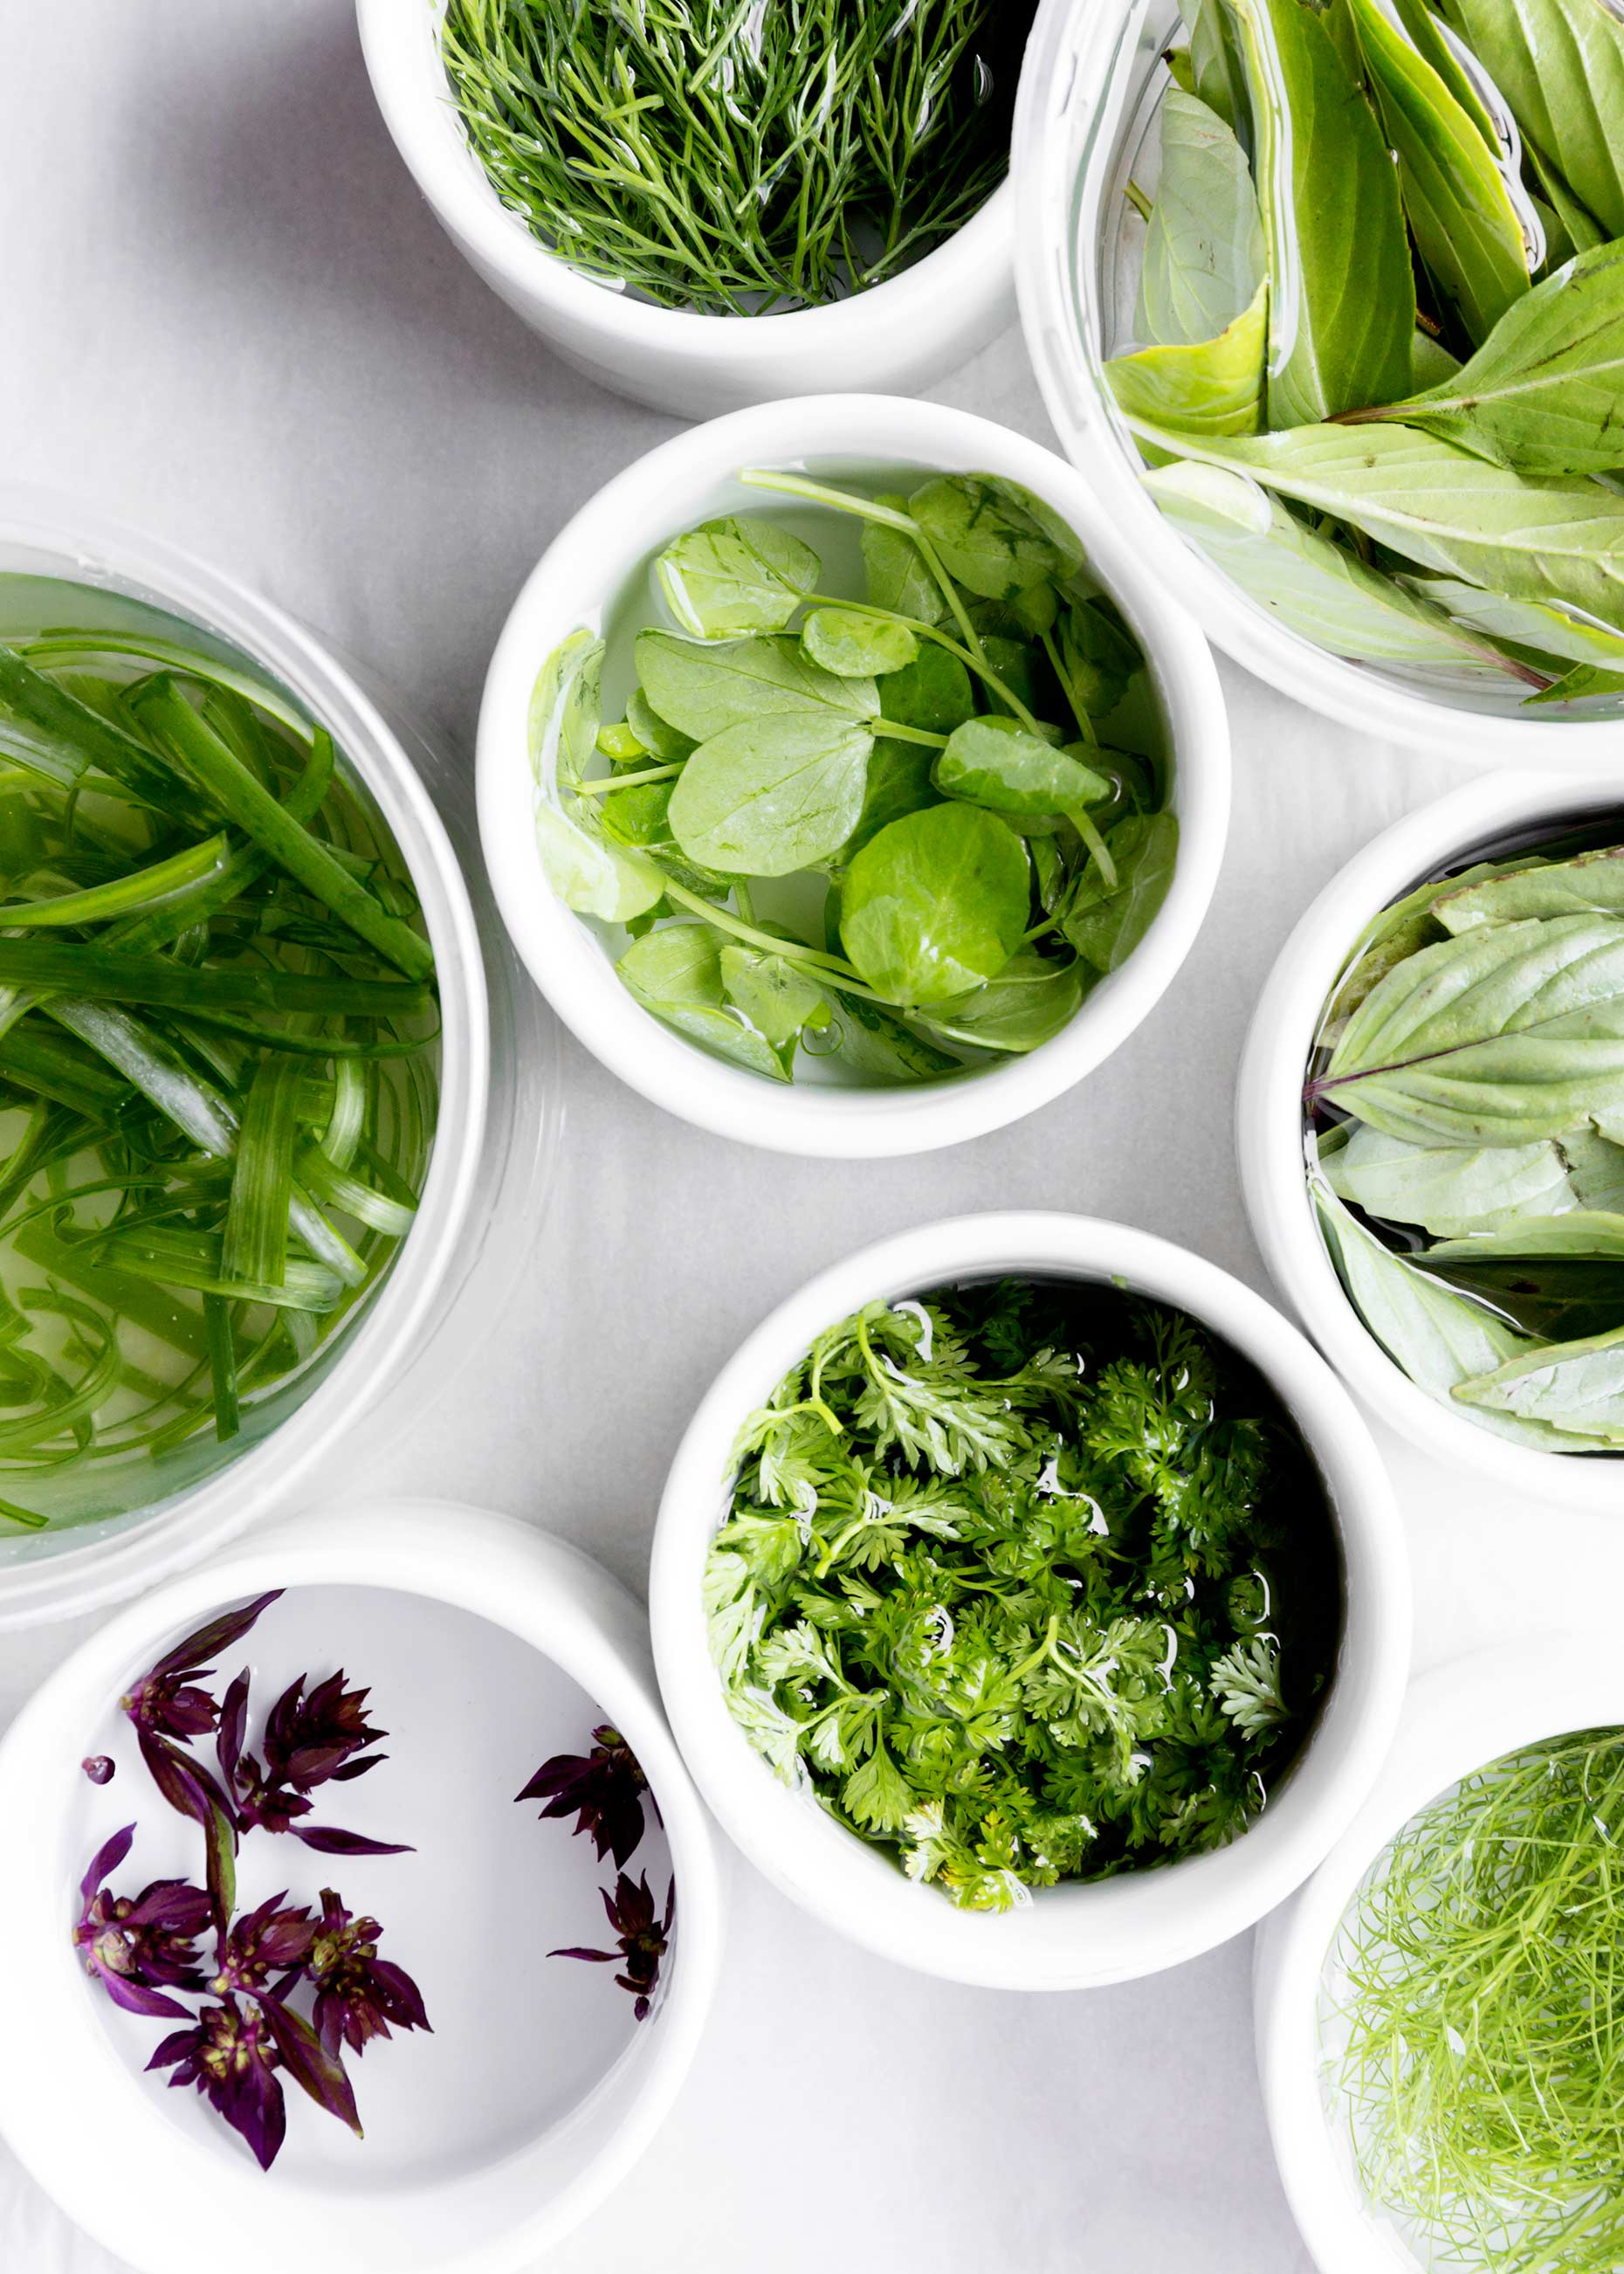 Herbs and microgreens